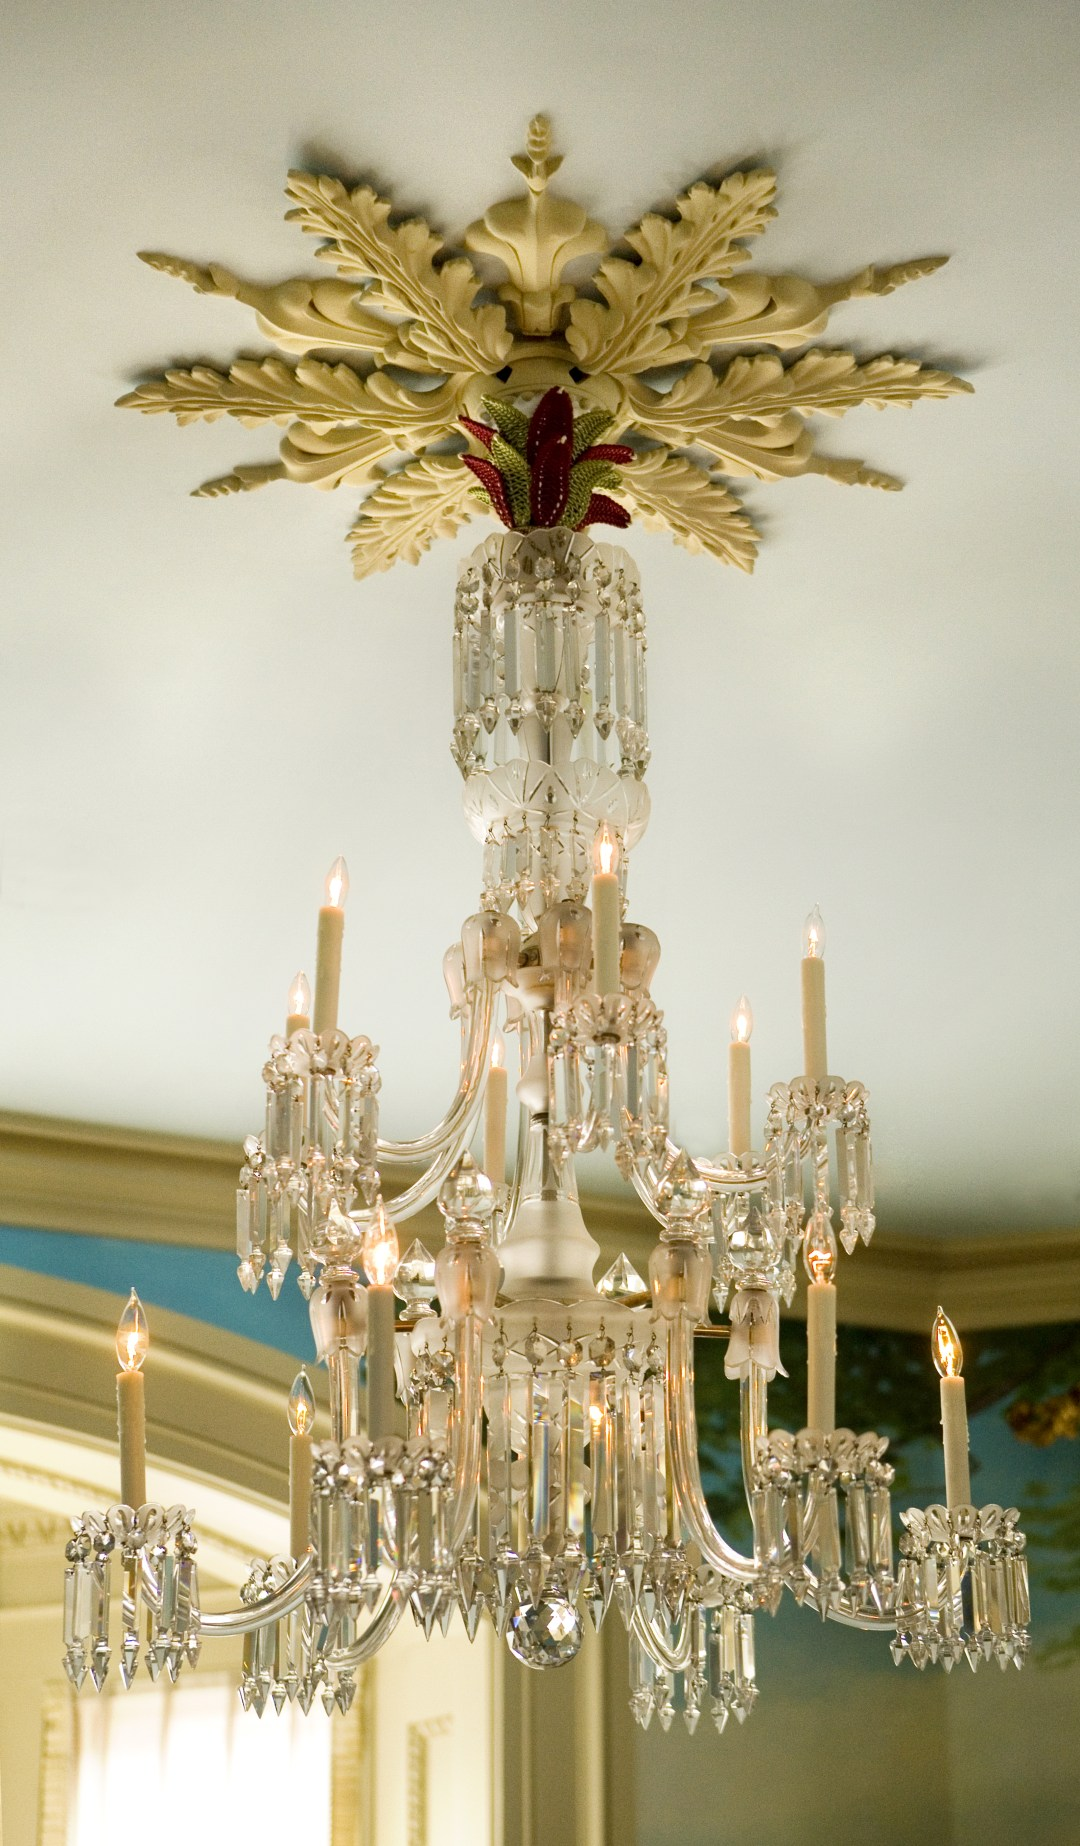 Heidi Pribell detail of chandelier